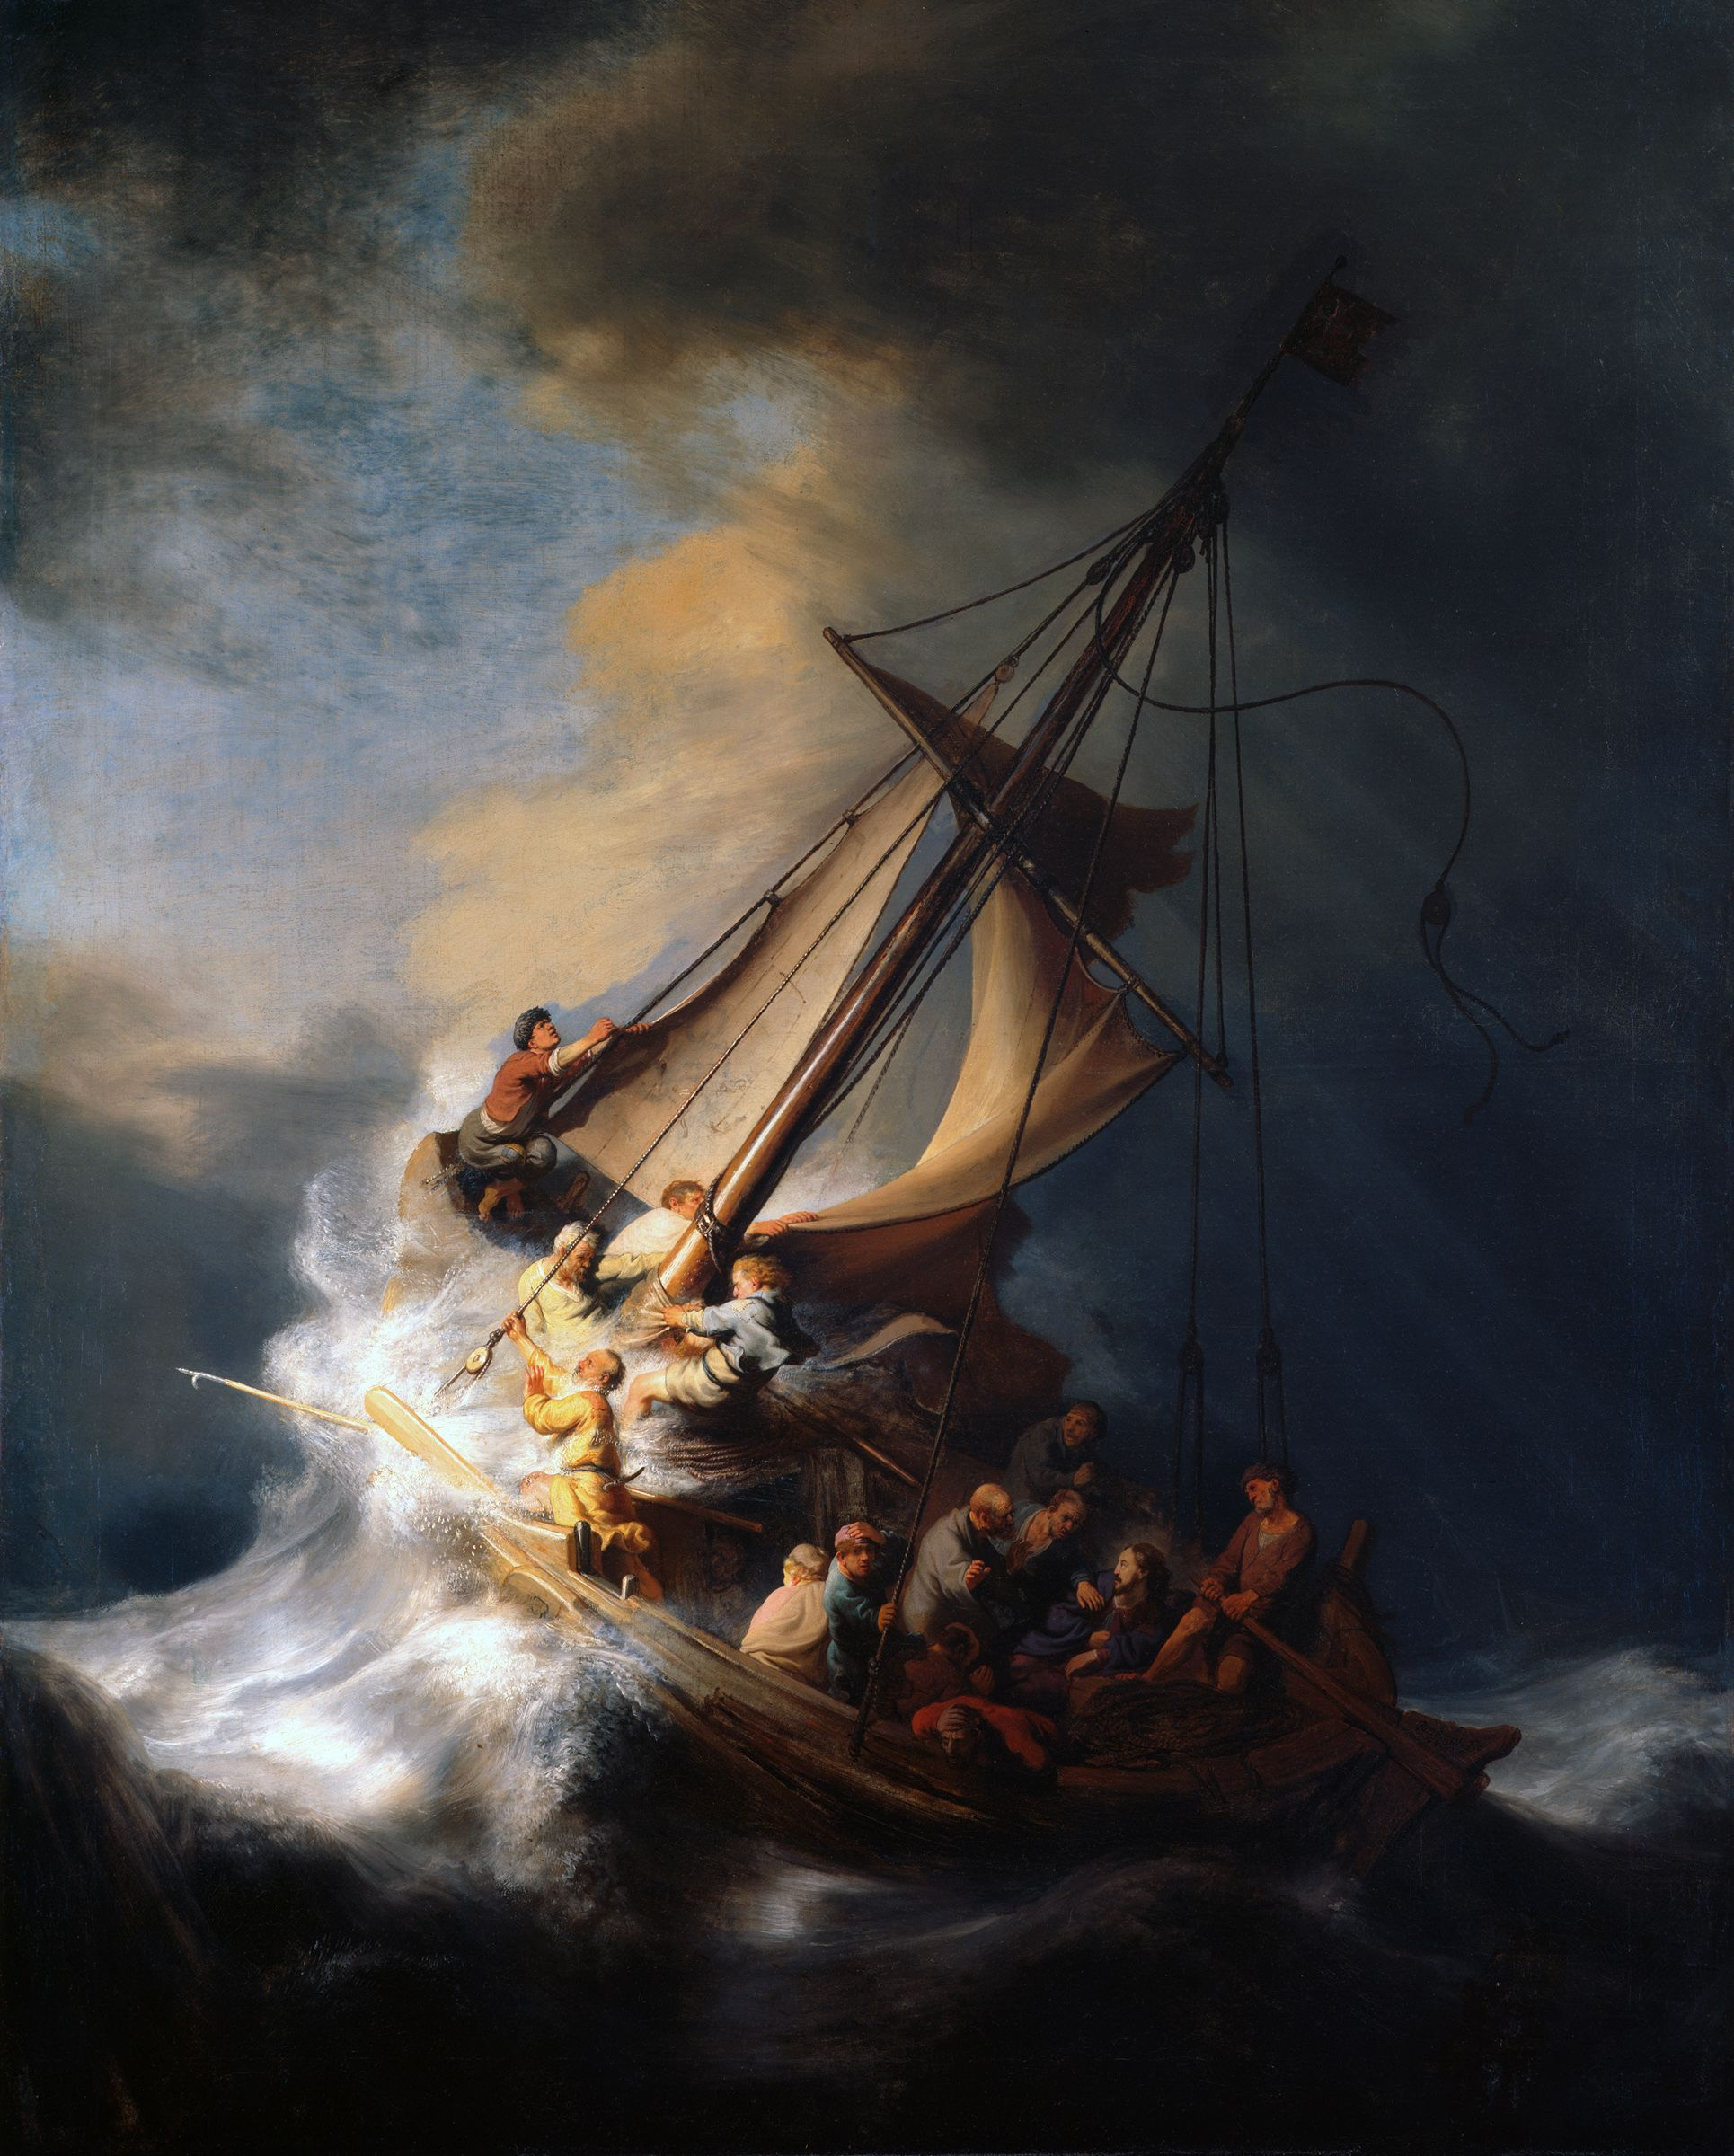 A Poem of Jesus in the Storm